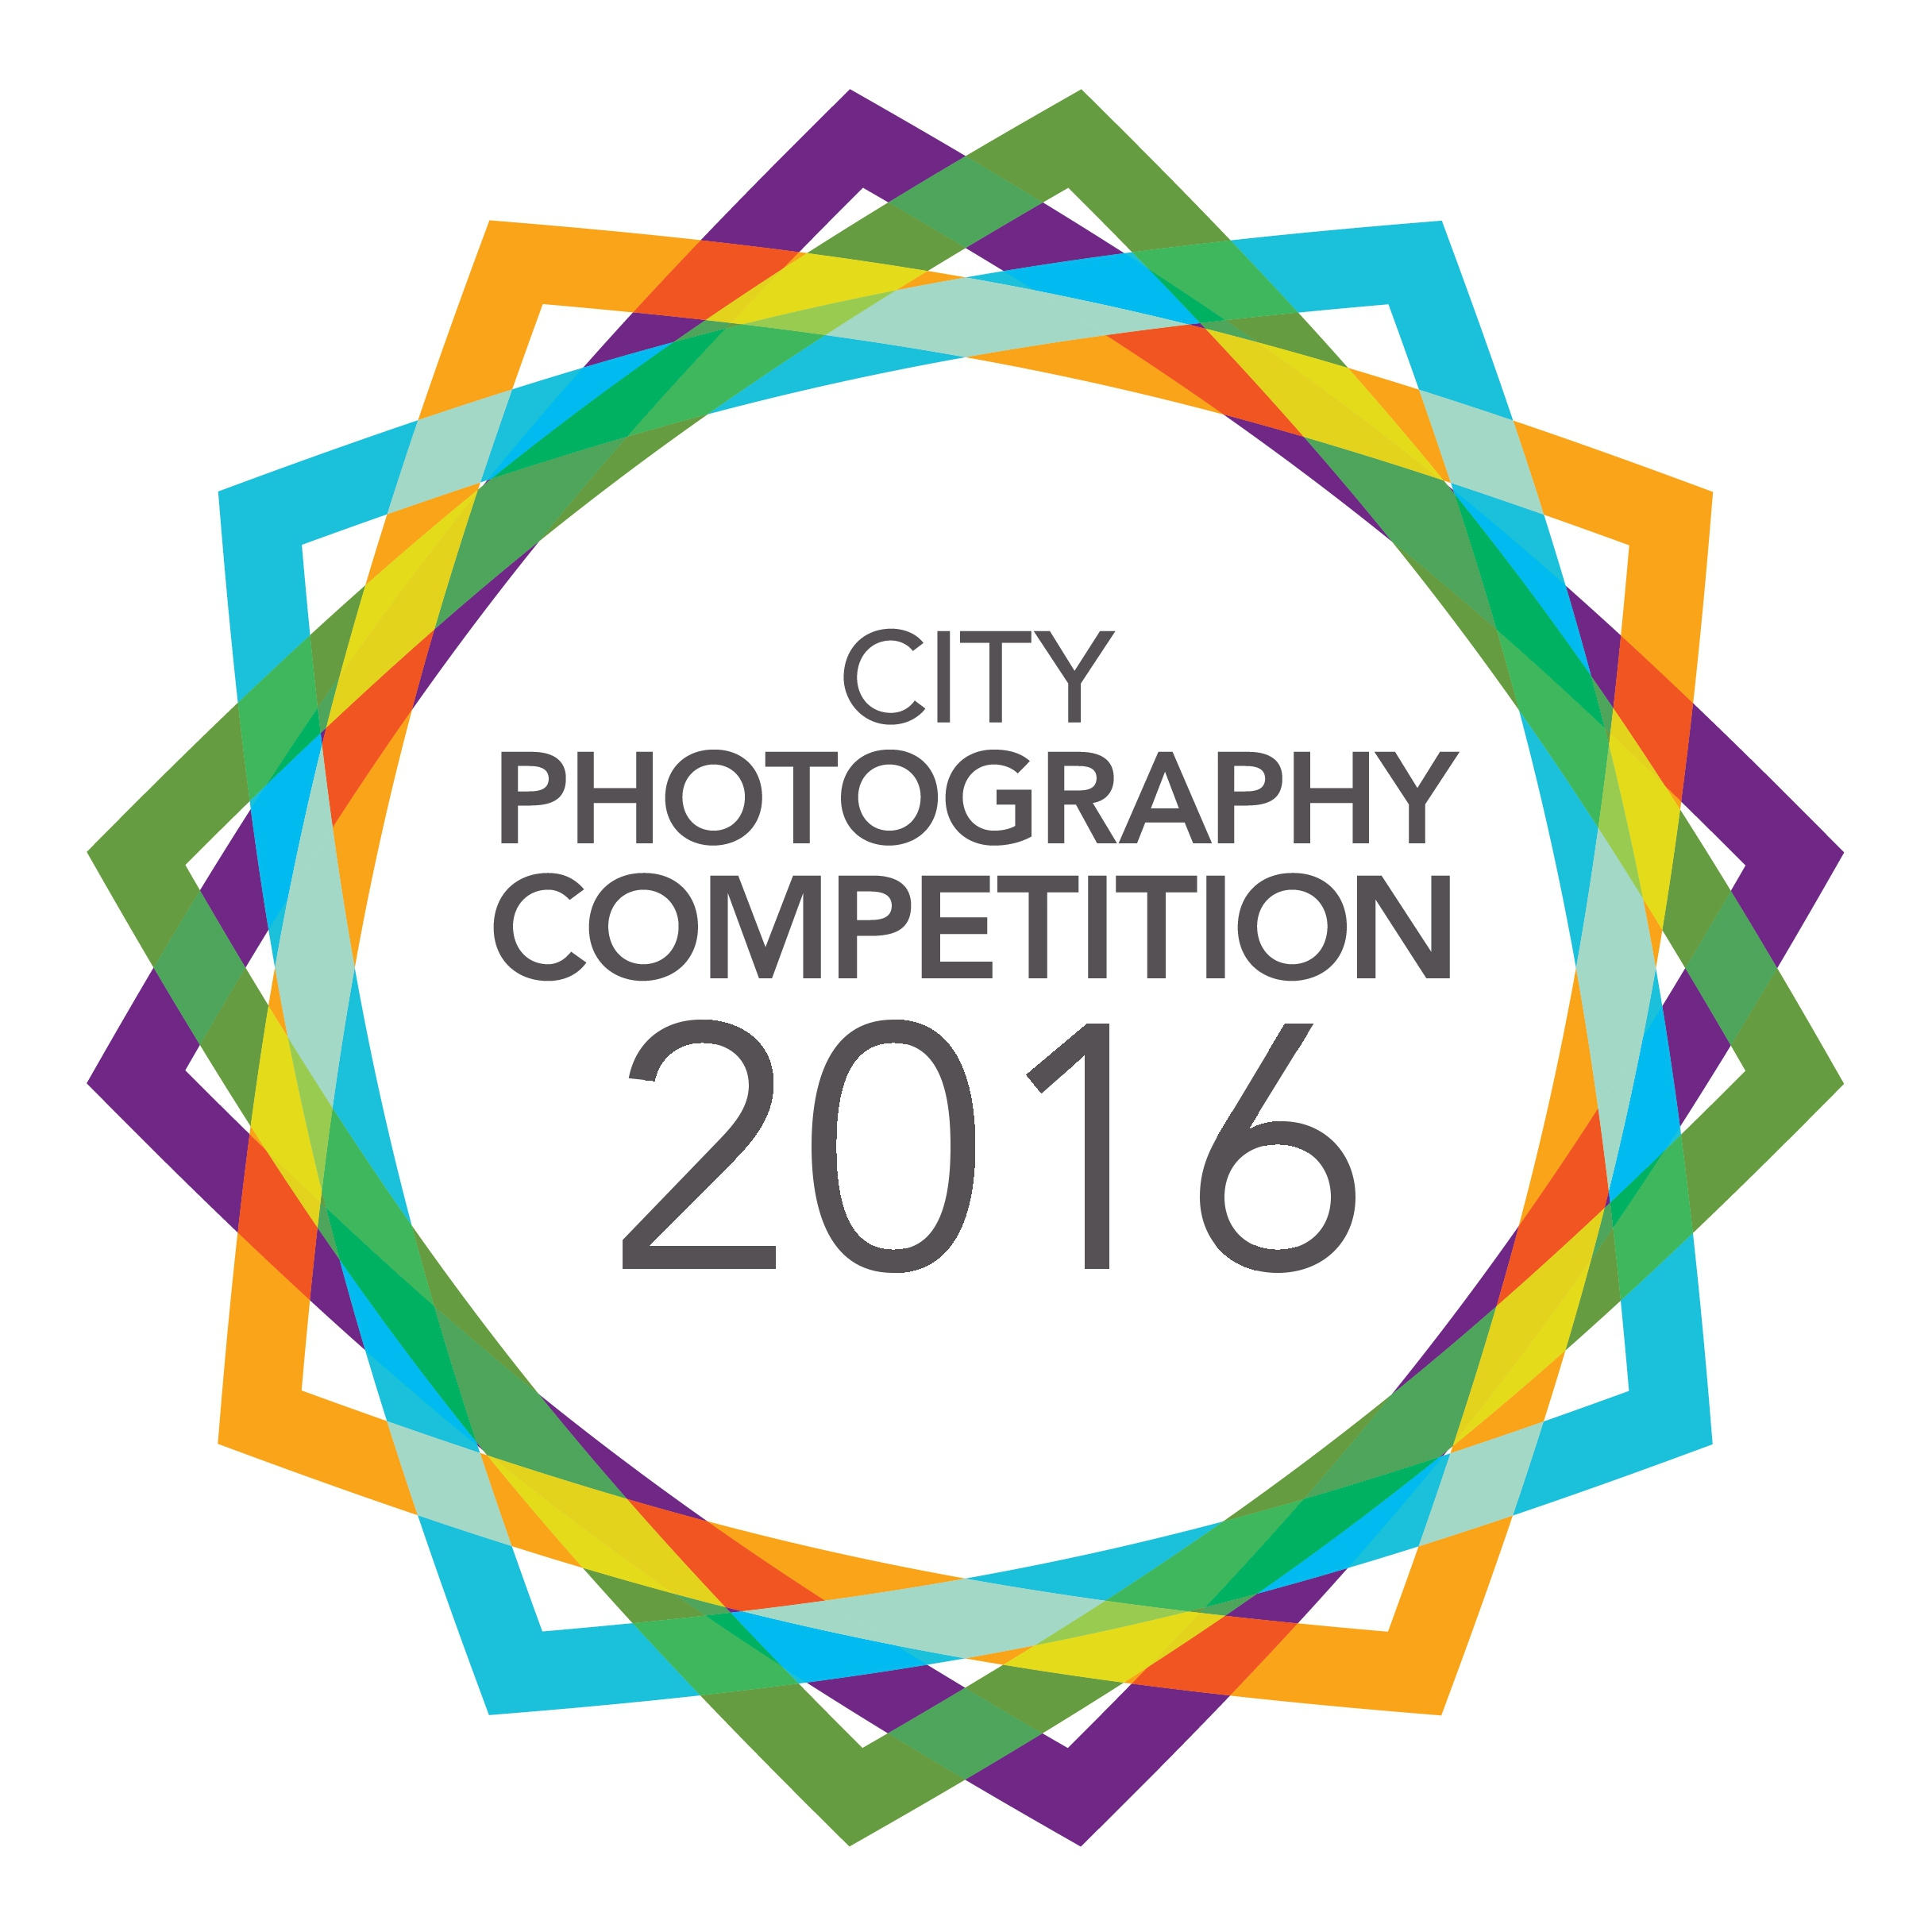 No Place Like Home Photography Competition - Housing Photography competition entry form